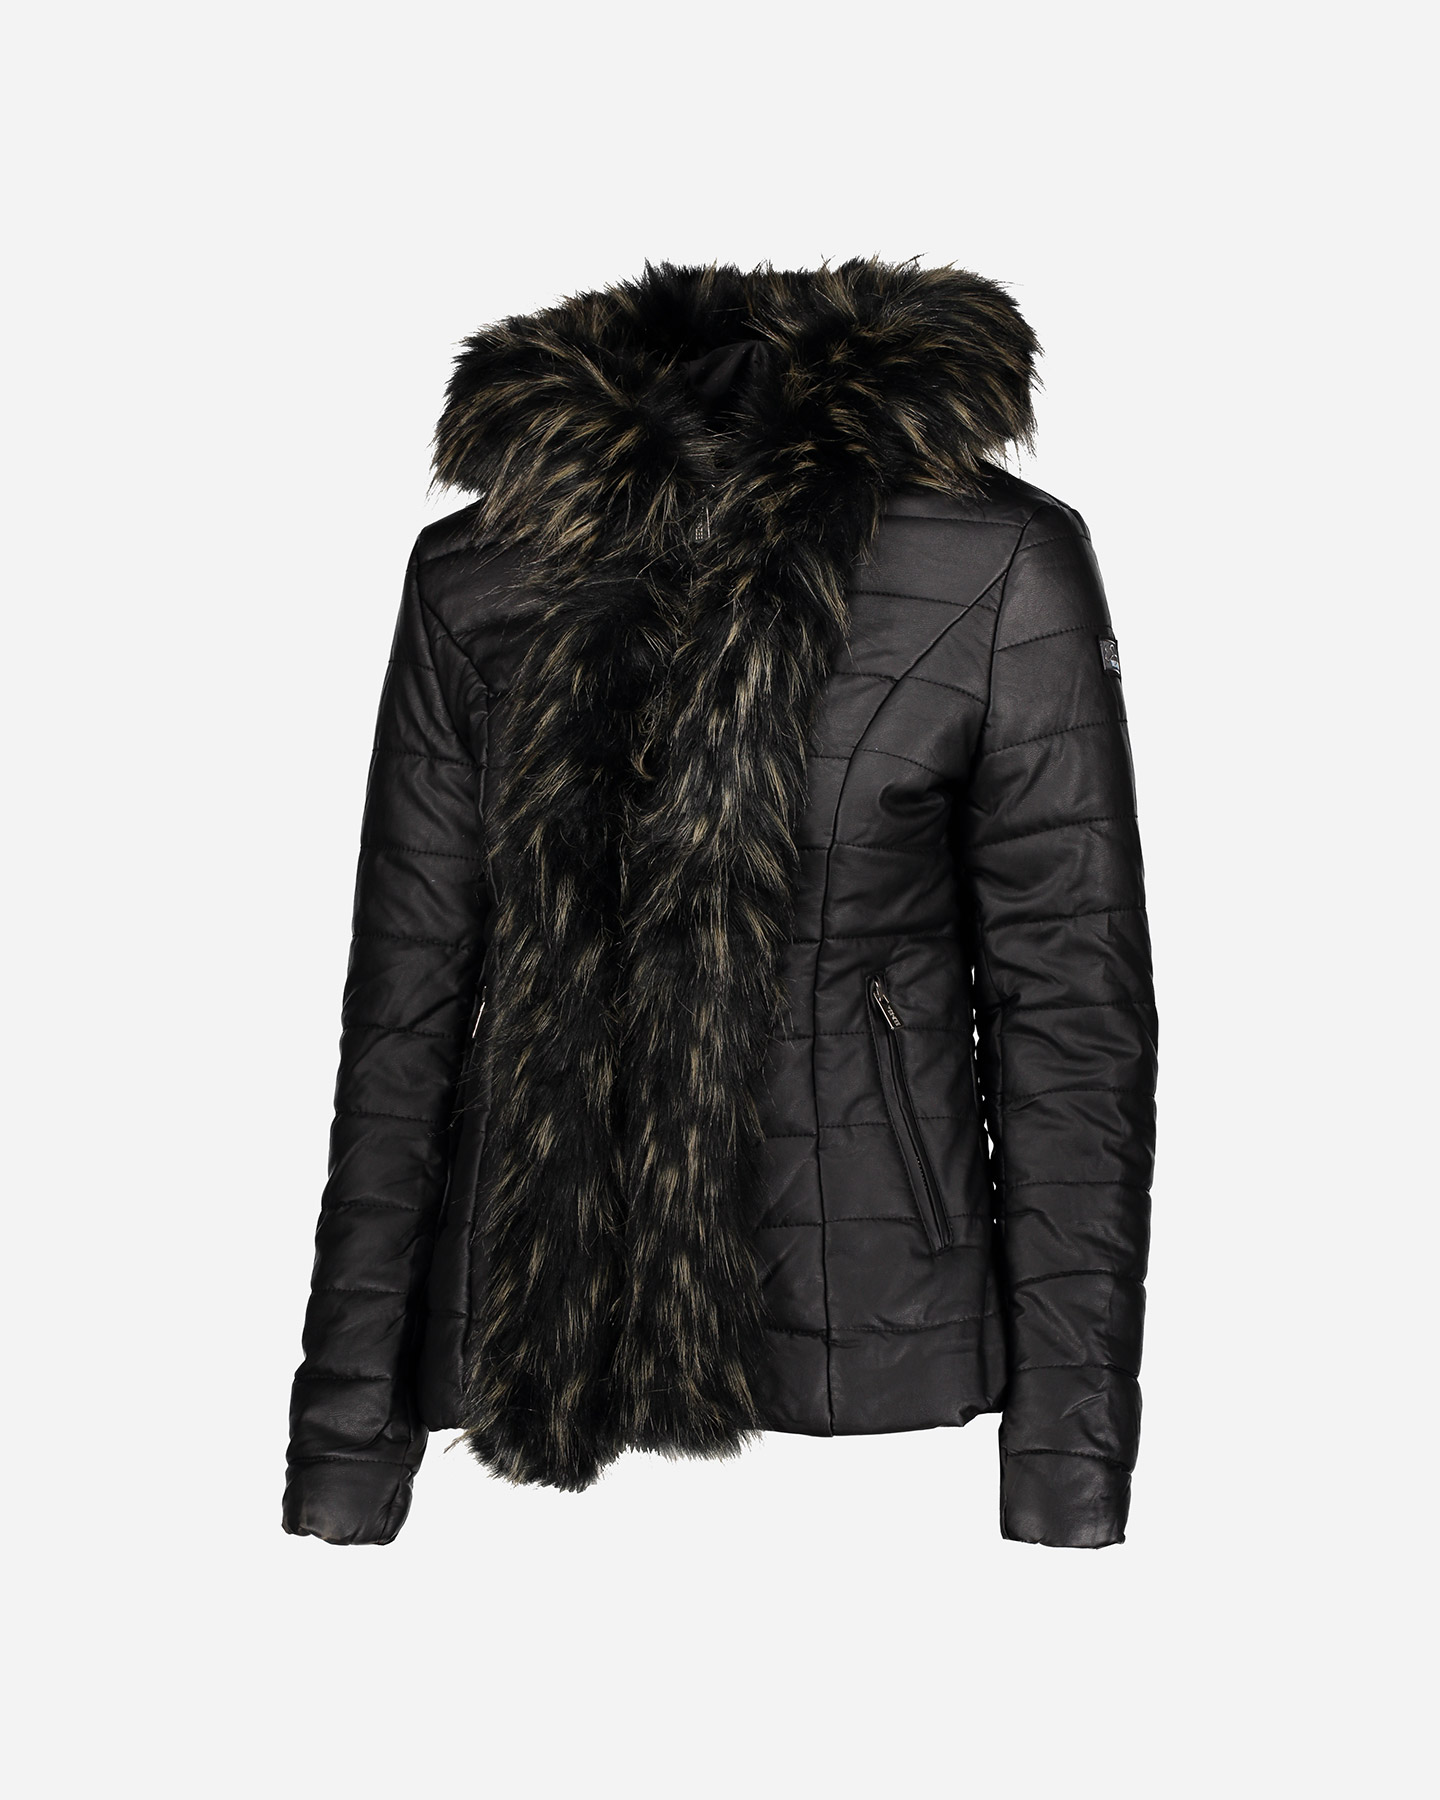 giacca similpelle donna yes zee pellicciotto